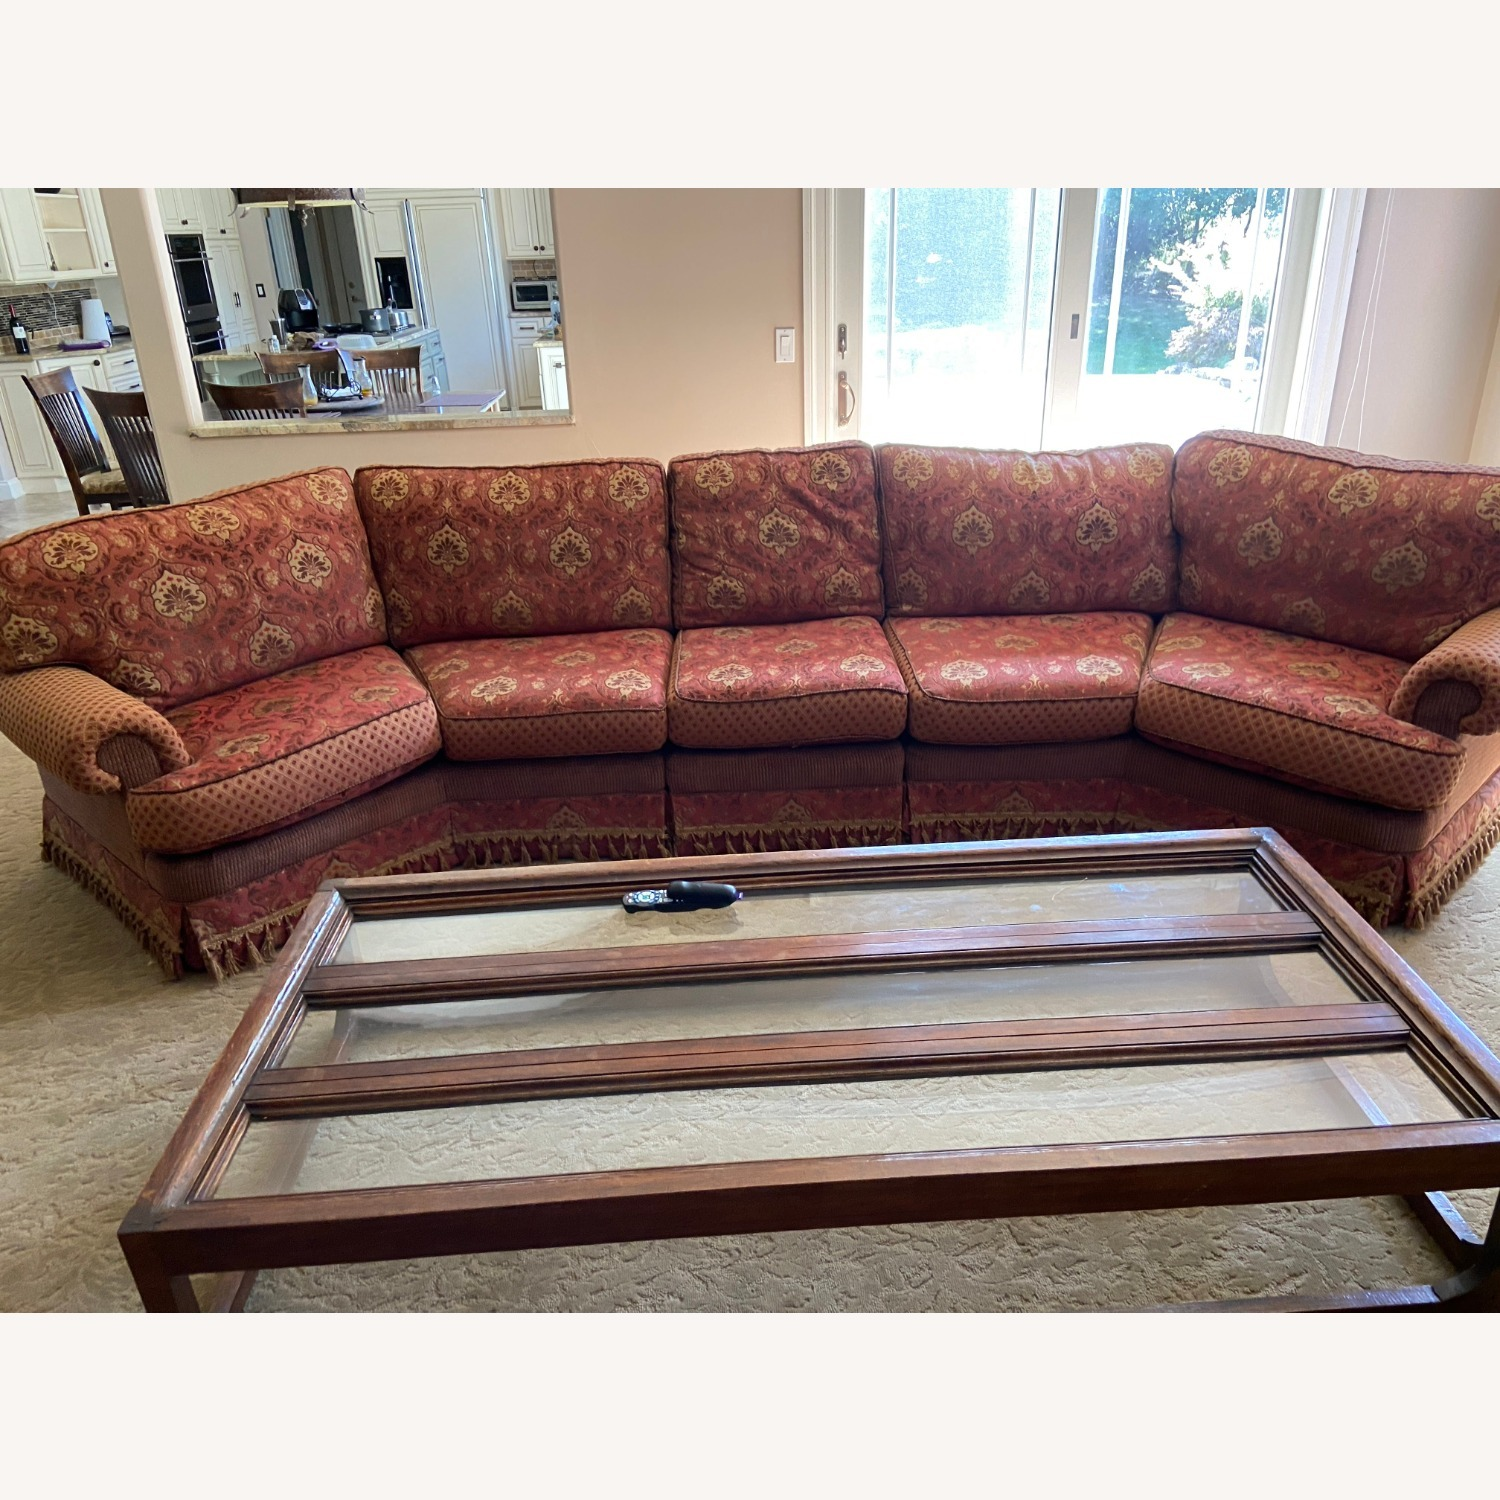 Sherrill Furniture 3 Piece Couch - image-2